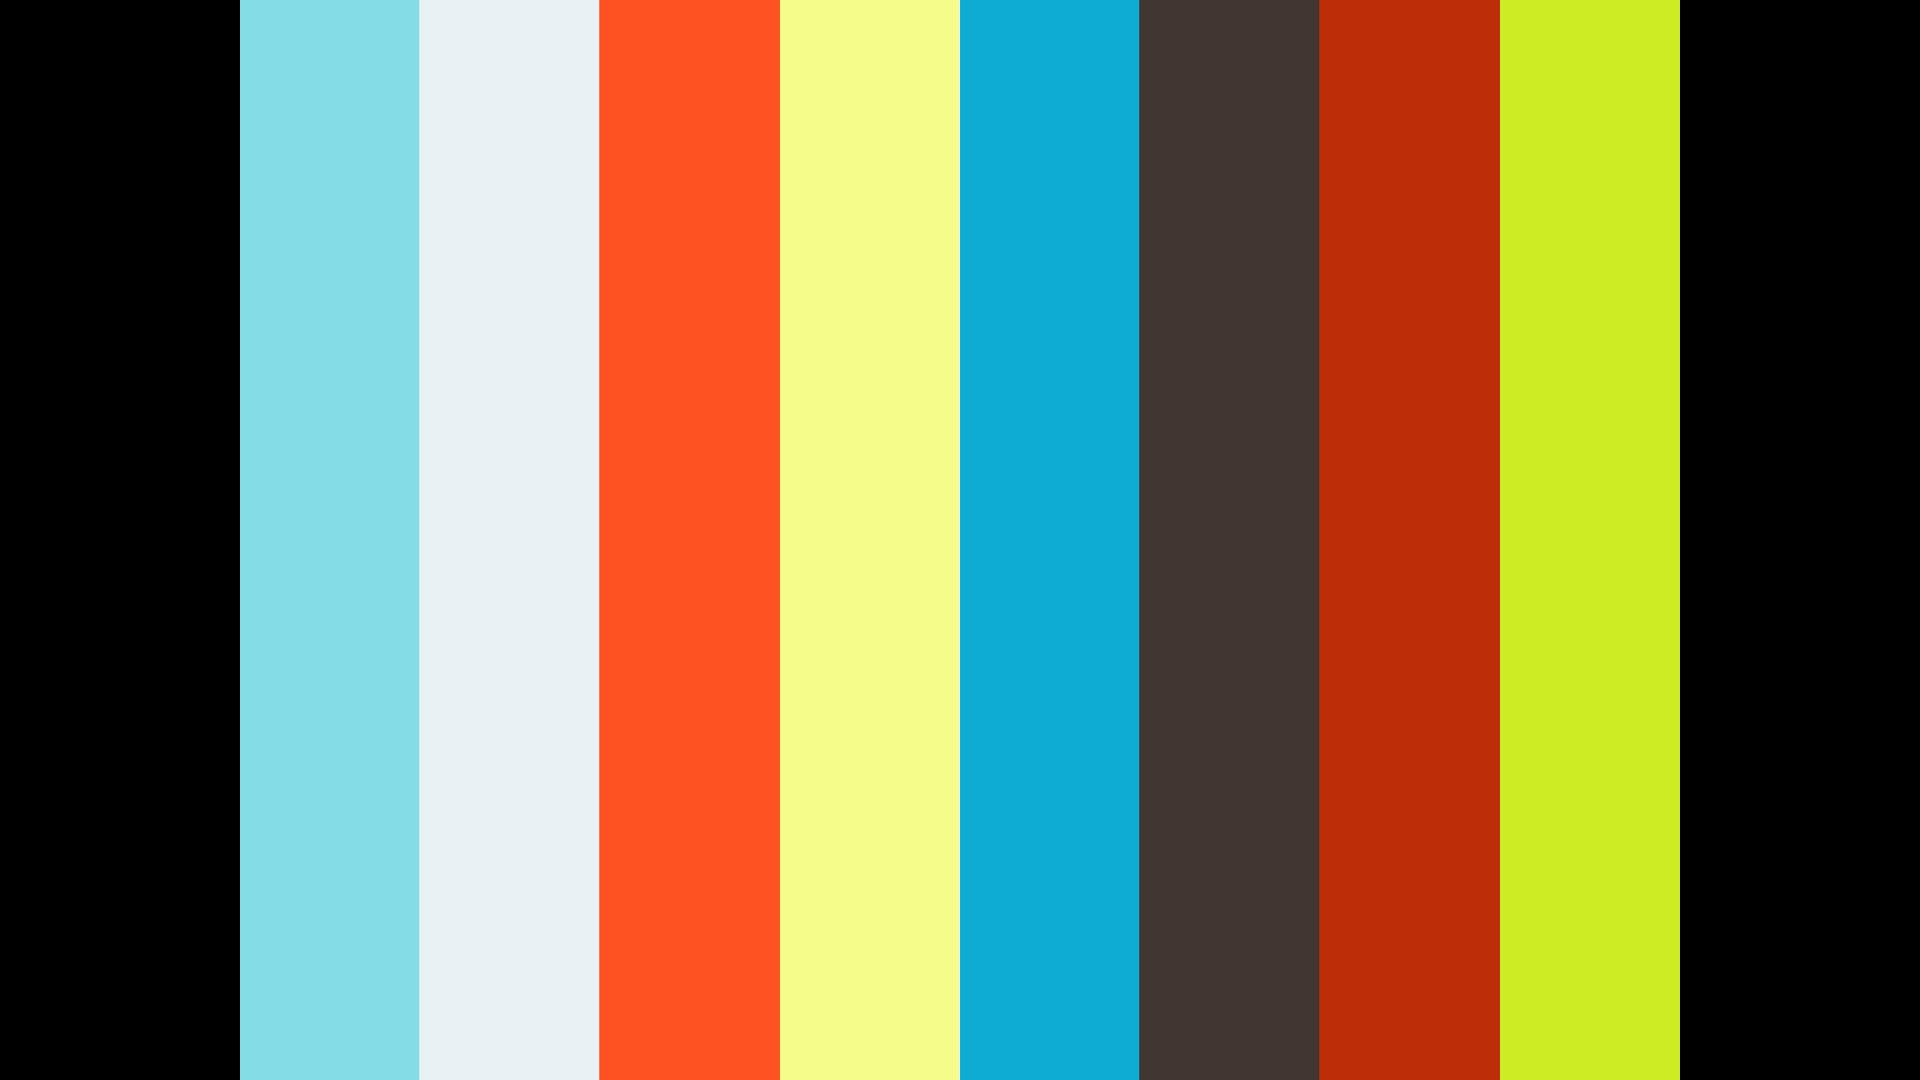 San Francisco Intensive 2013 -  Timeless, Choreography by Josie Walsh - Joffrey Ballet School